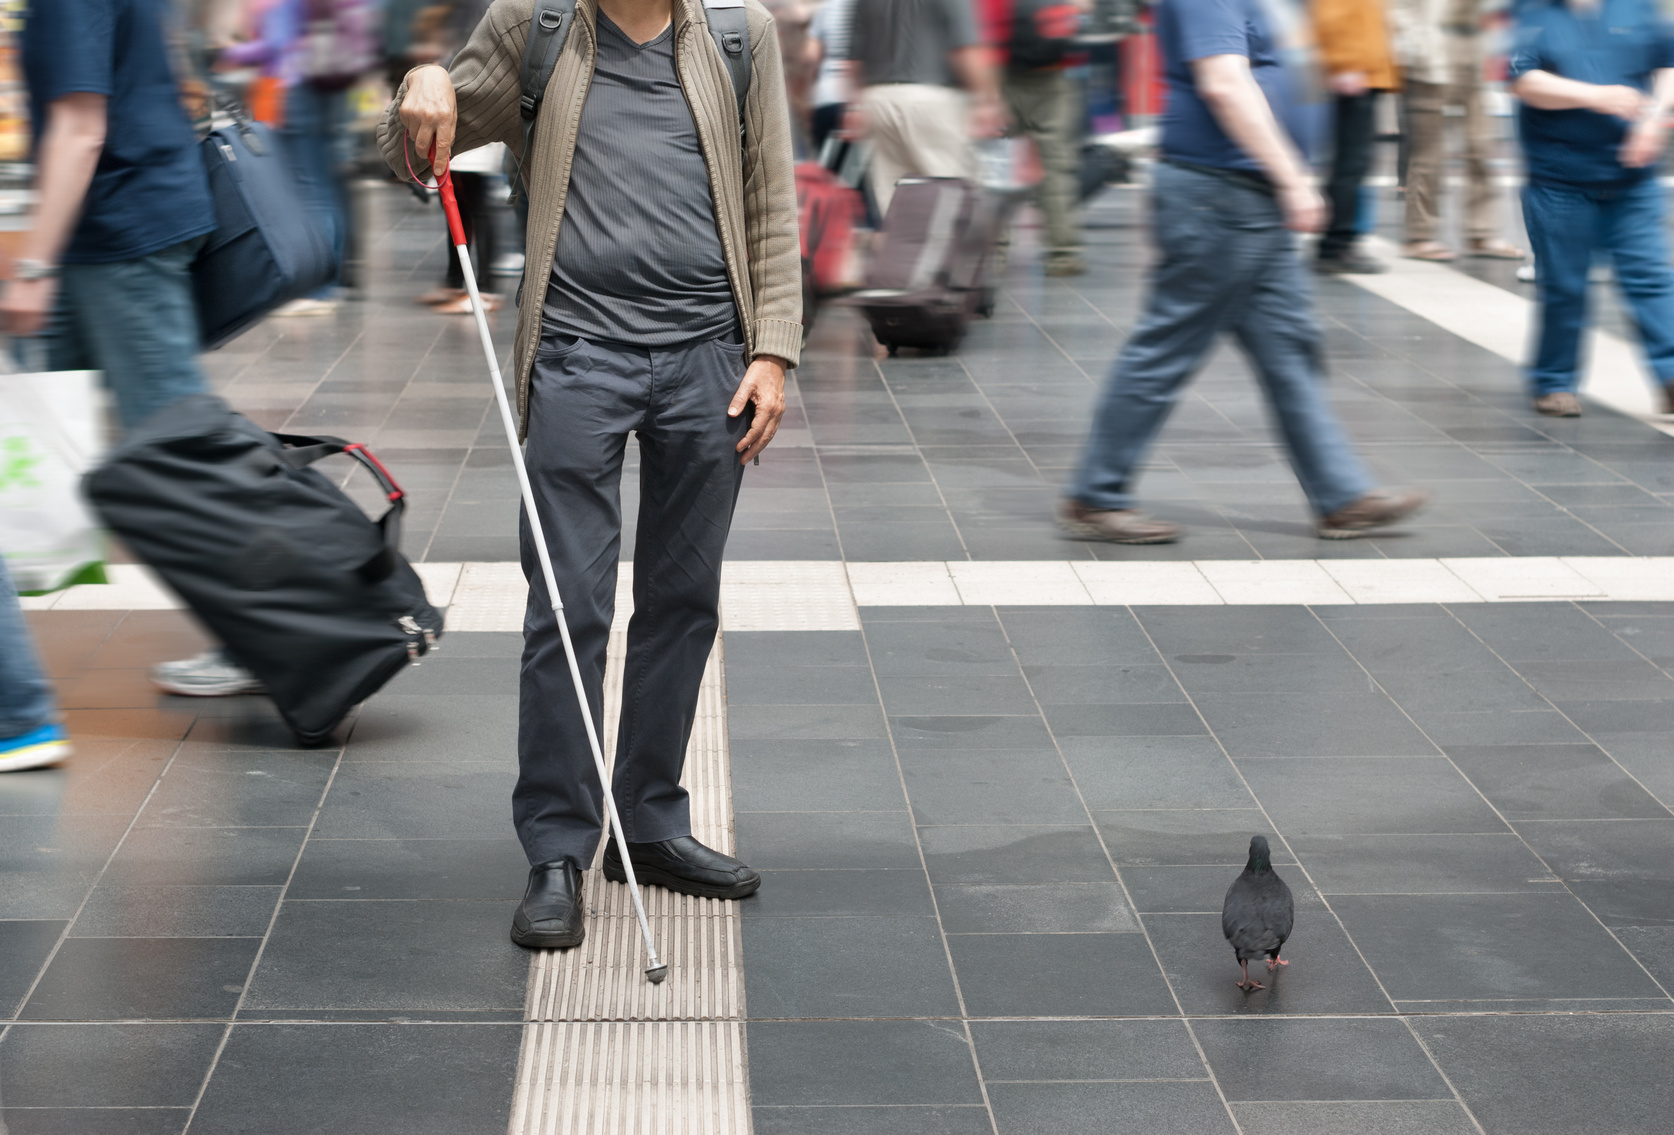 Visually impaired person uses the tactile guidance system in the station